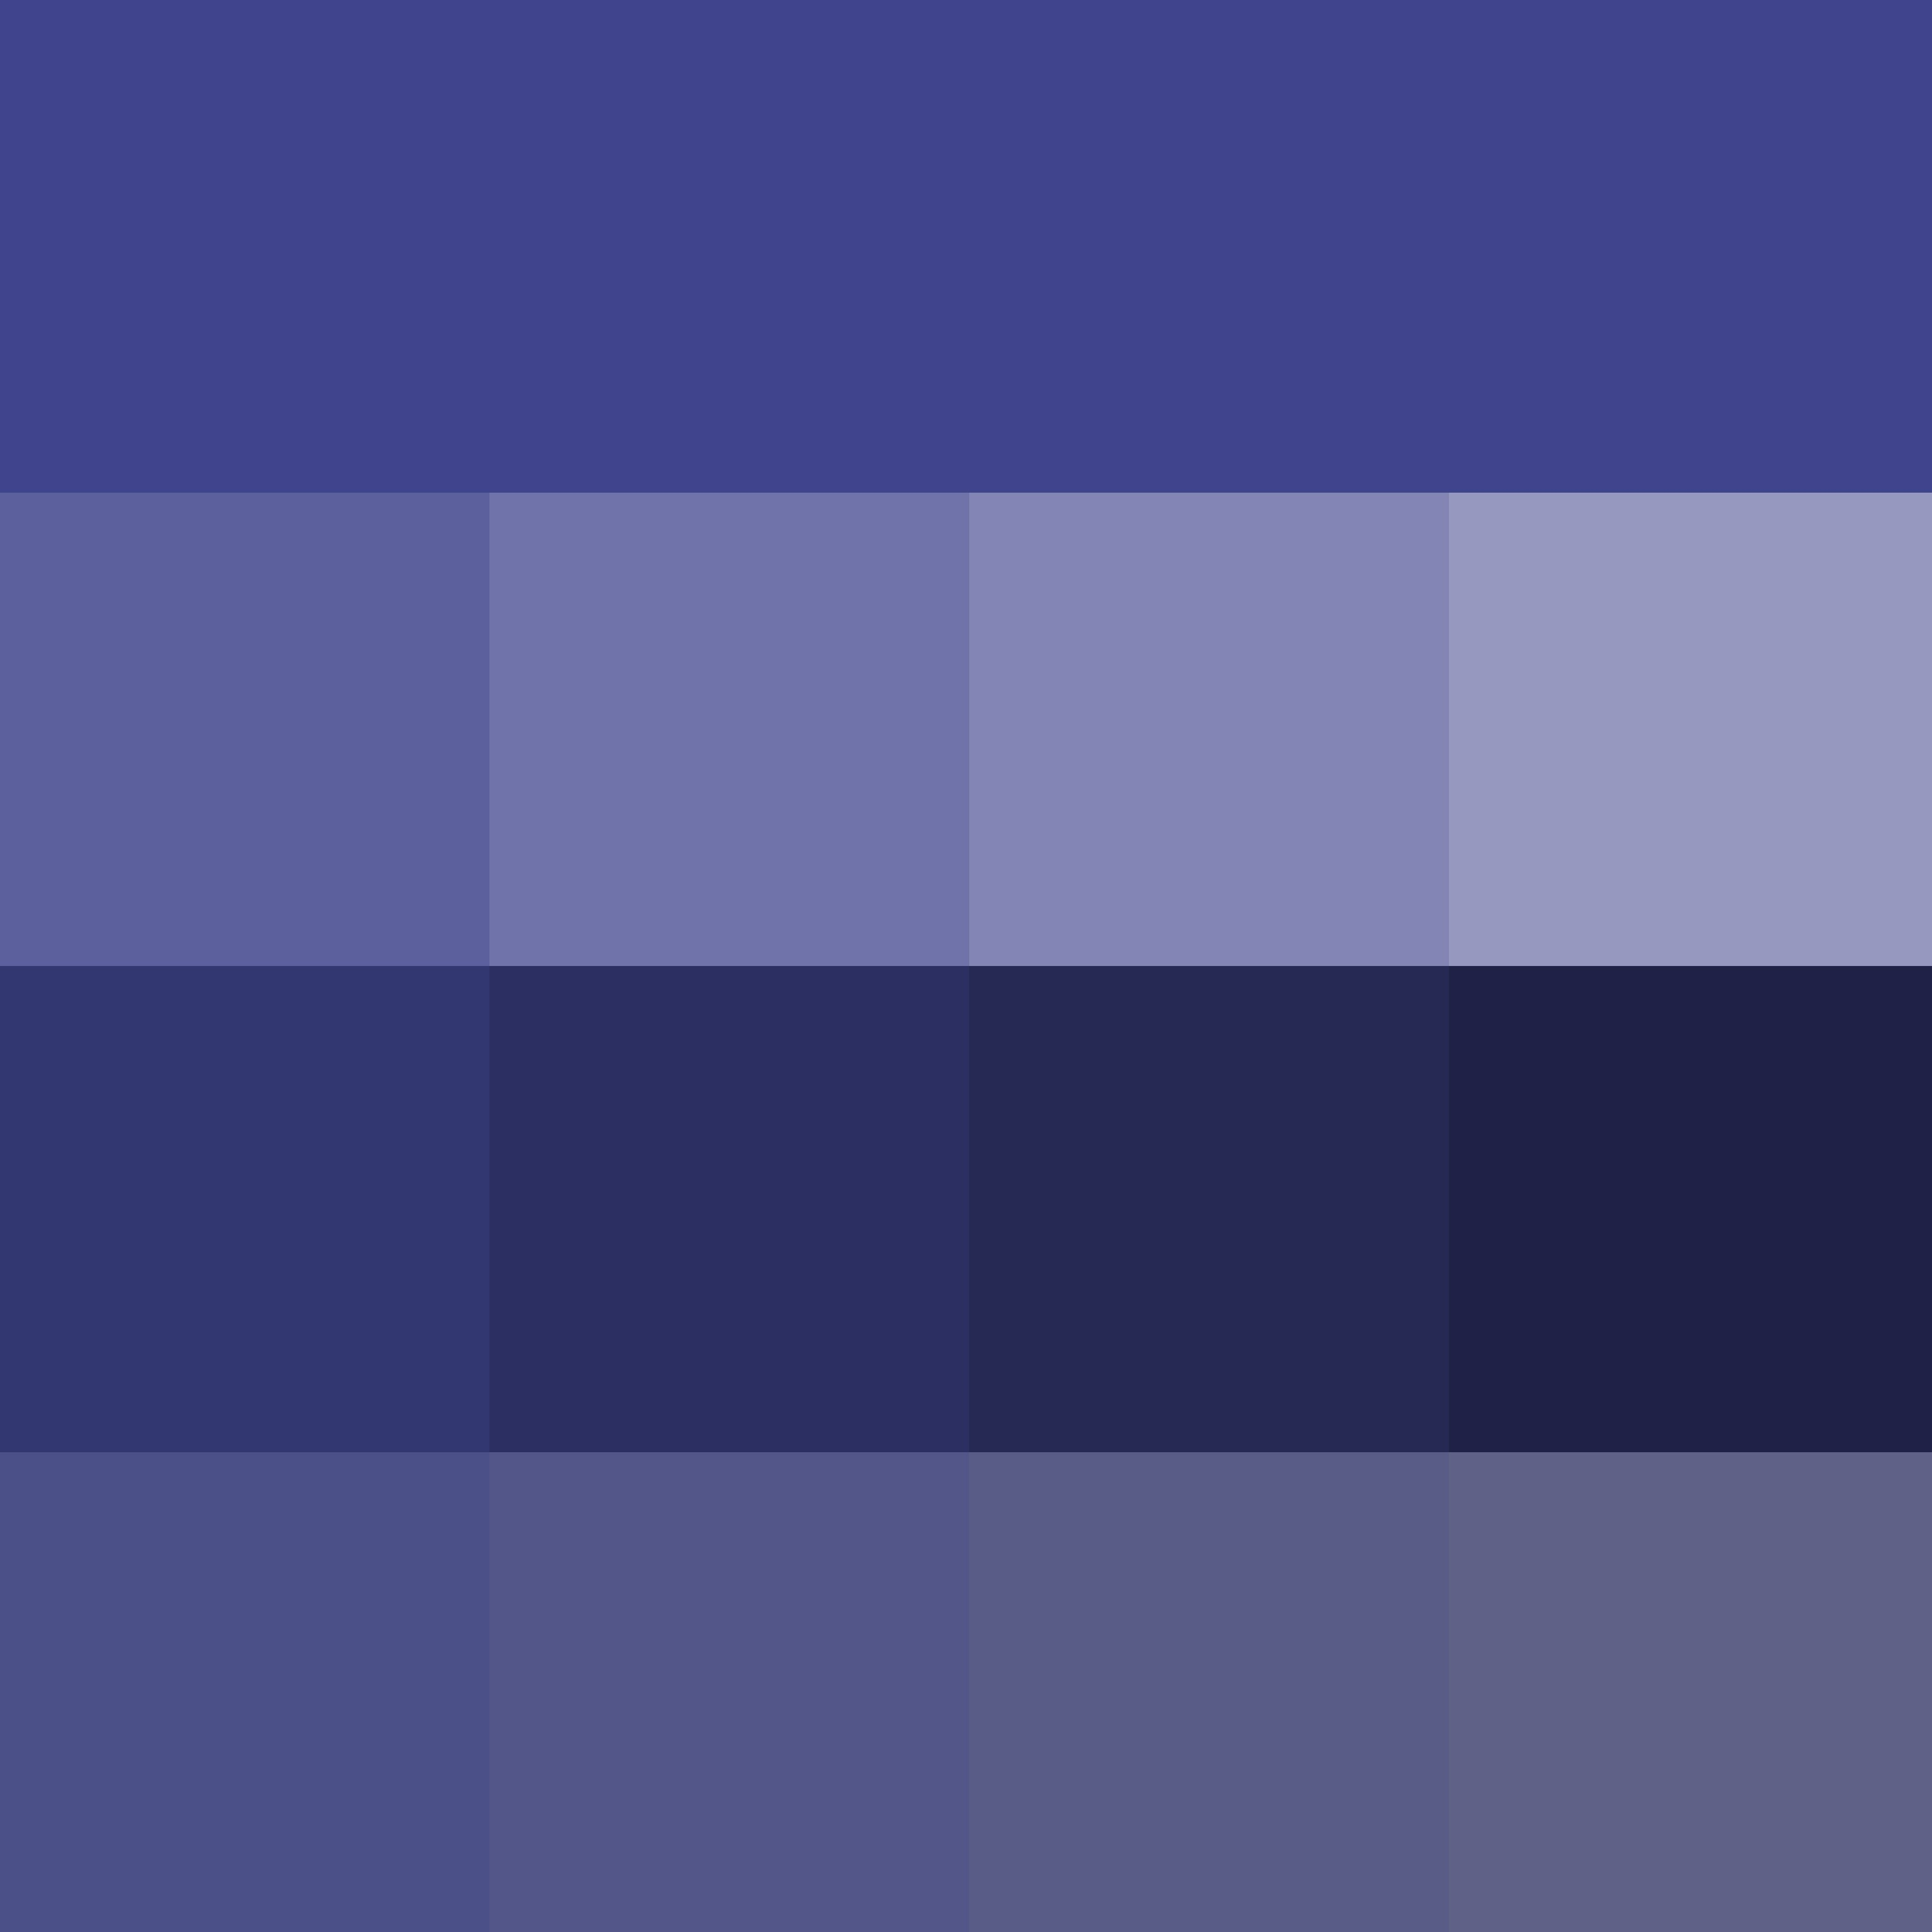 Pantone Royal Blue Hue Pure Color With Tints White Shades Black And Tones Grey Which Desaturates The THD